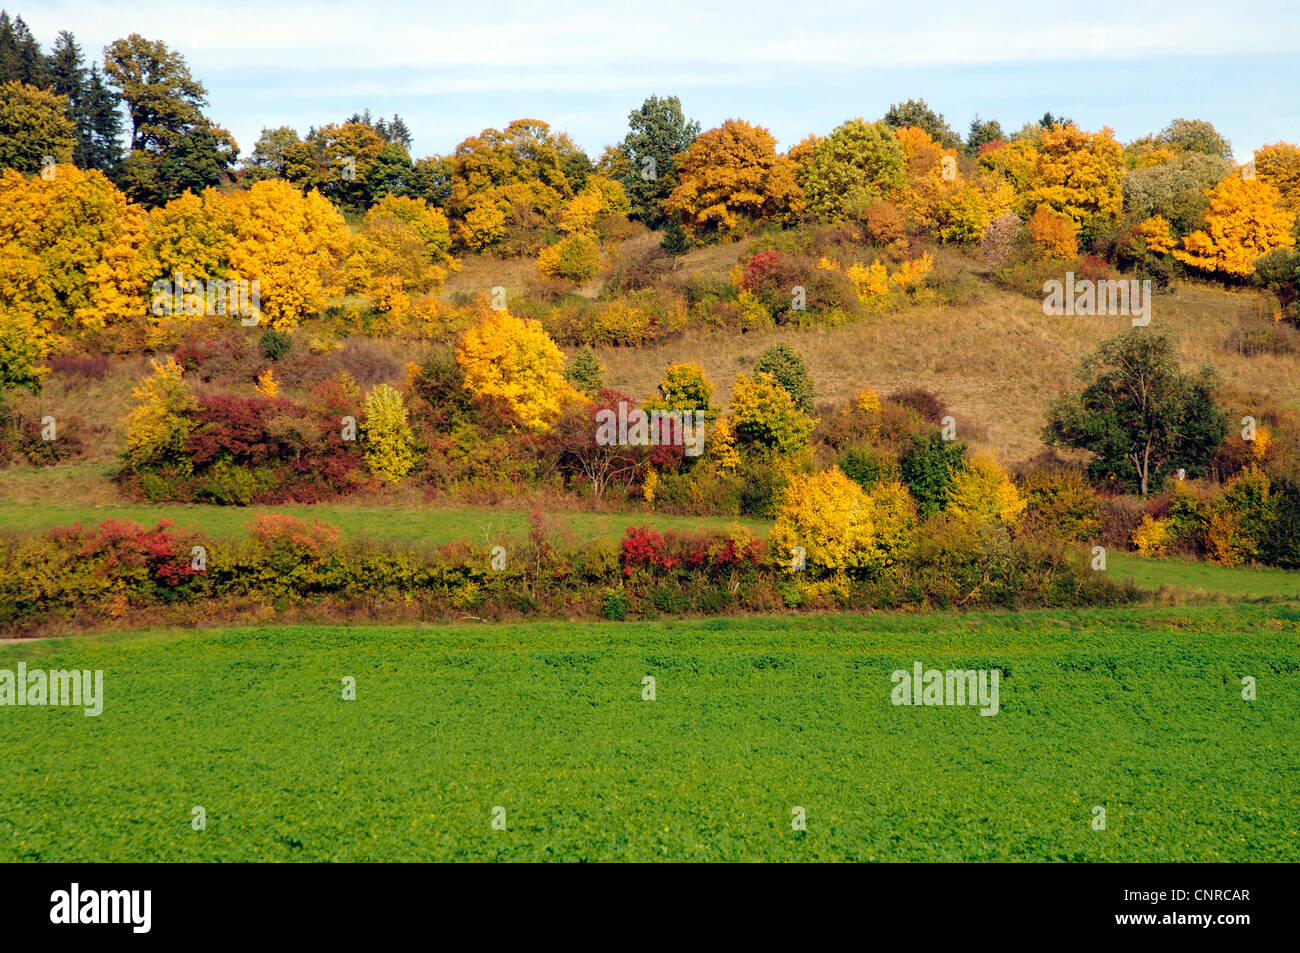 Extensive mature hedge landscape in autumn colours , Germany, Baden-Wuerttemberg, Schwaebische Alb - Stock Image